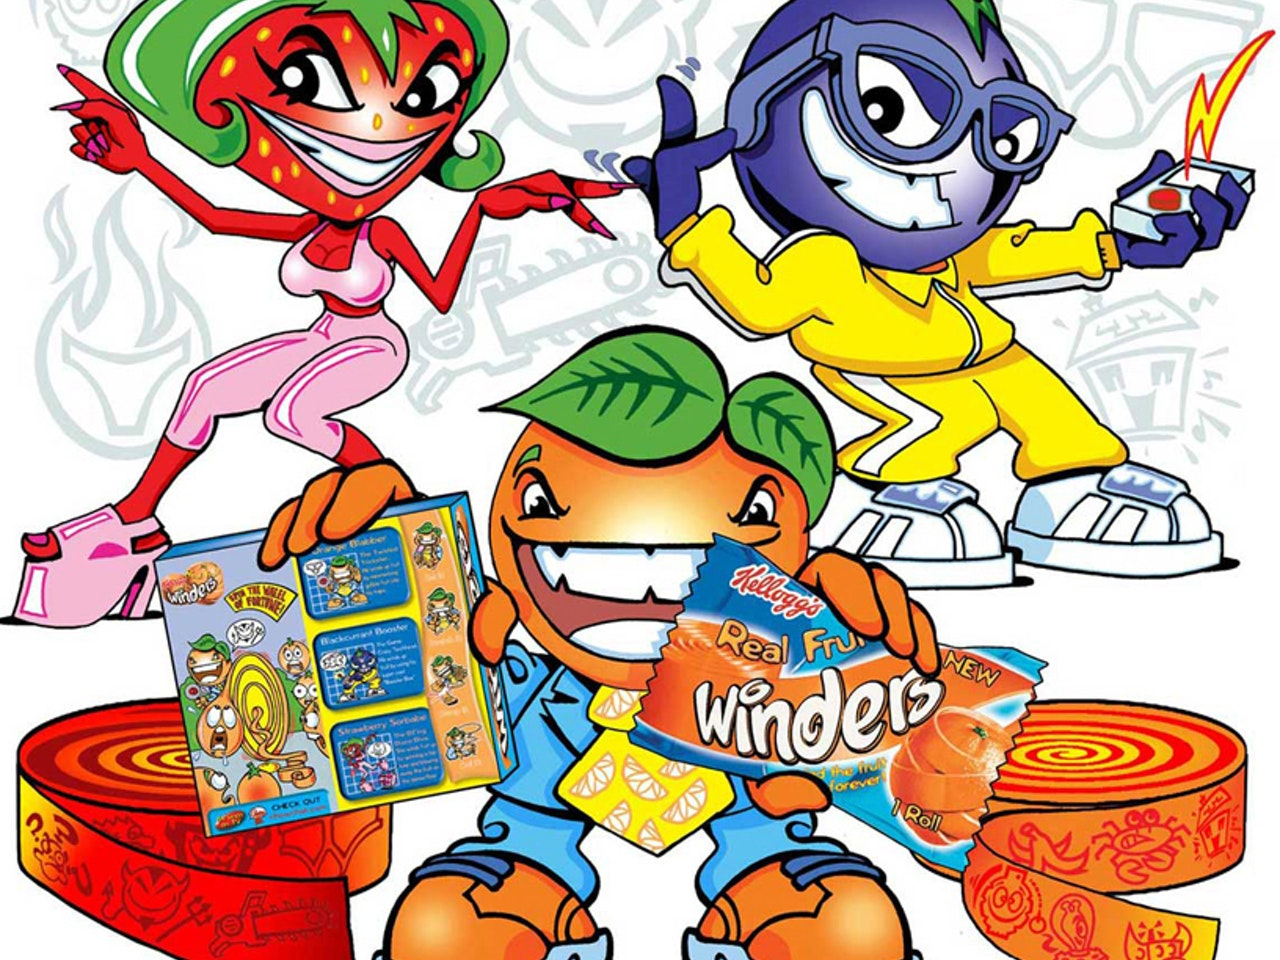 Kelloggs Fruit Winders gang  packaging design Cool friendly funny Funky Happy manga anime childrens cartoon comic strip Book cover illustration animation